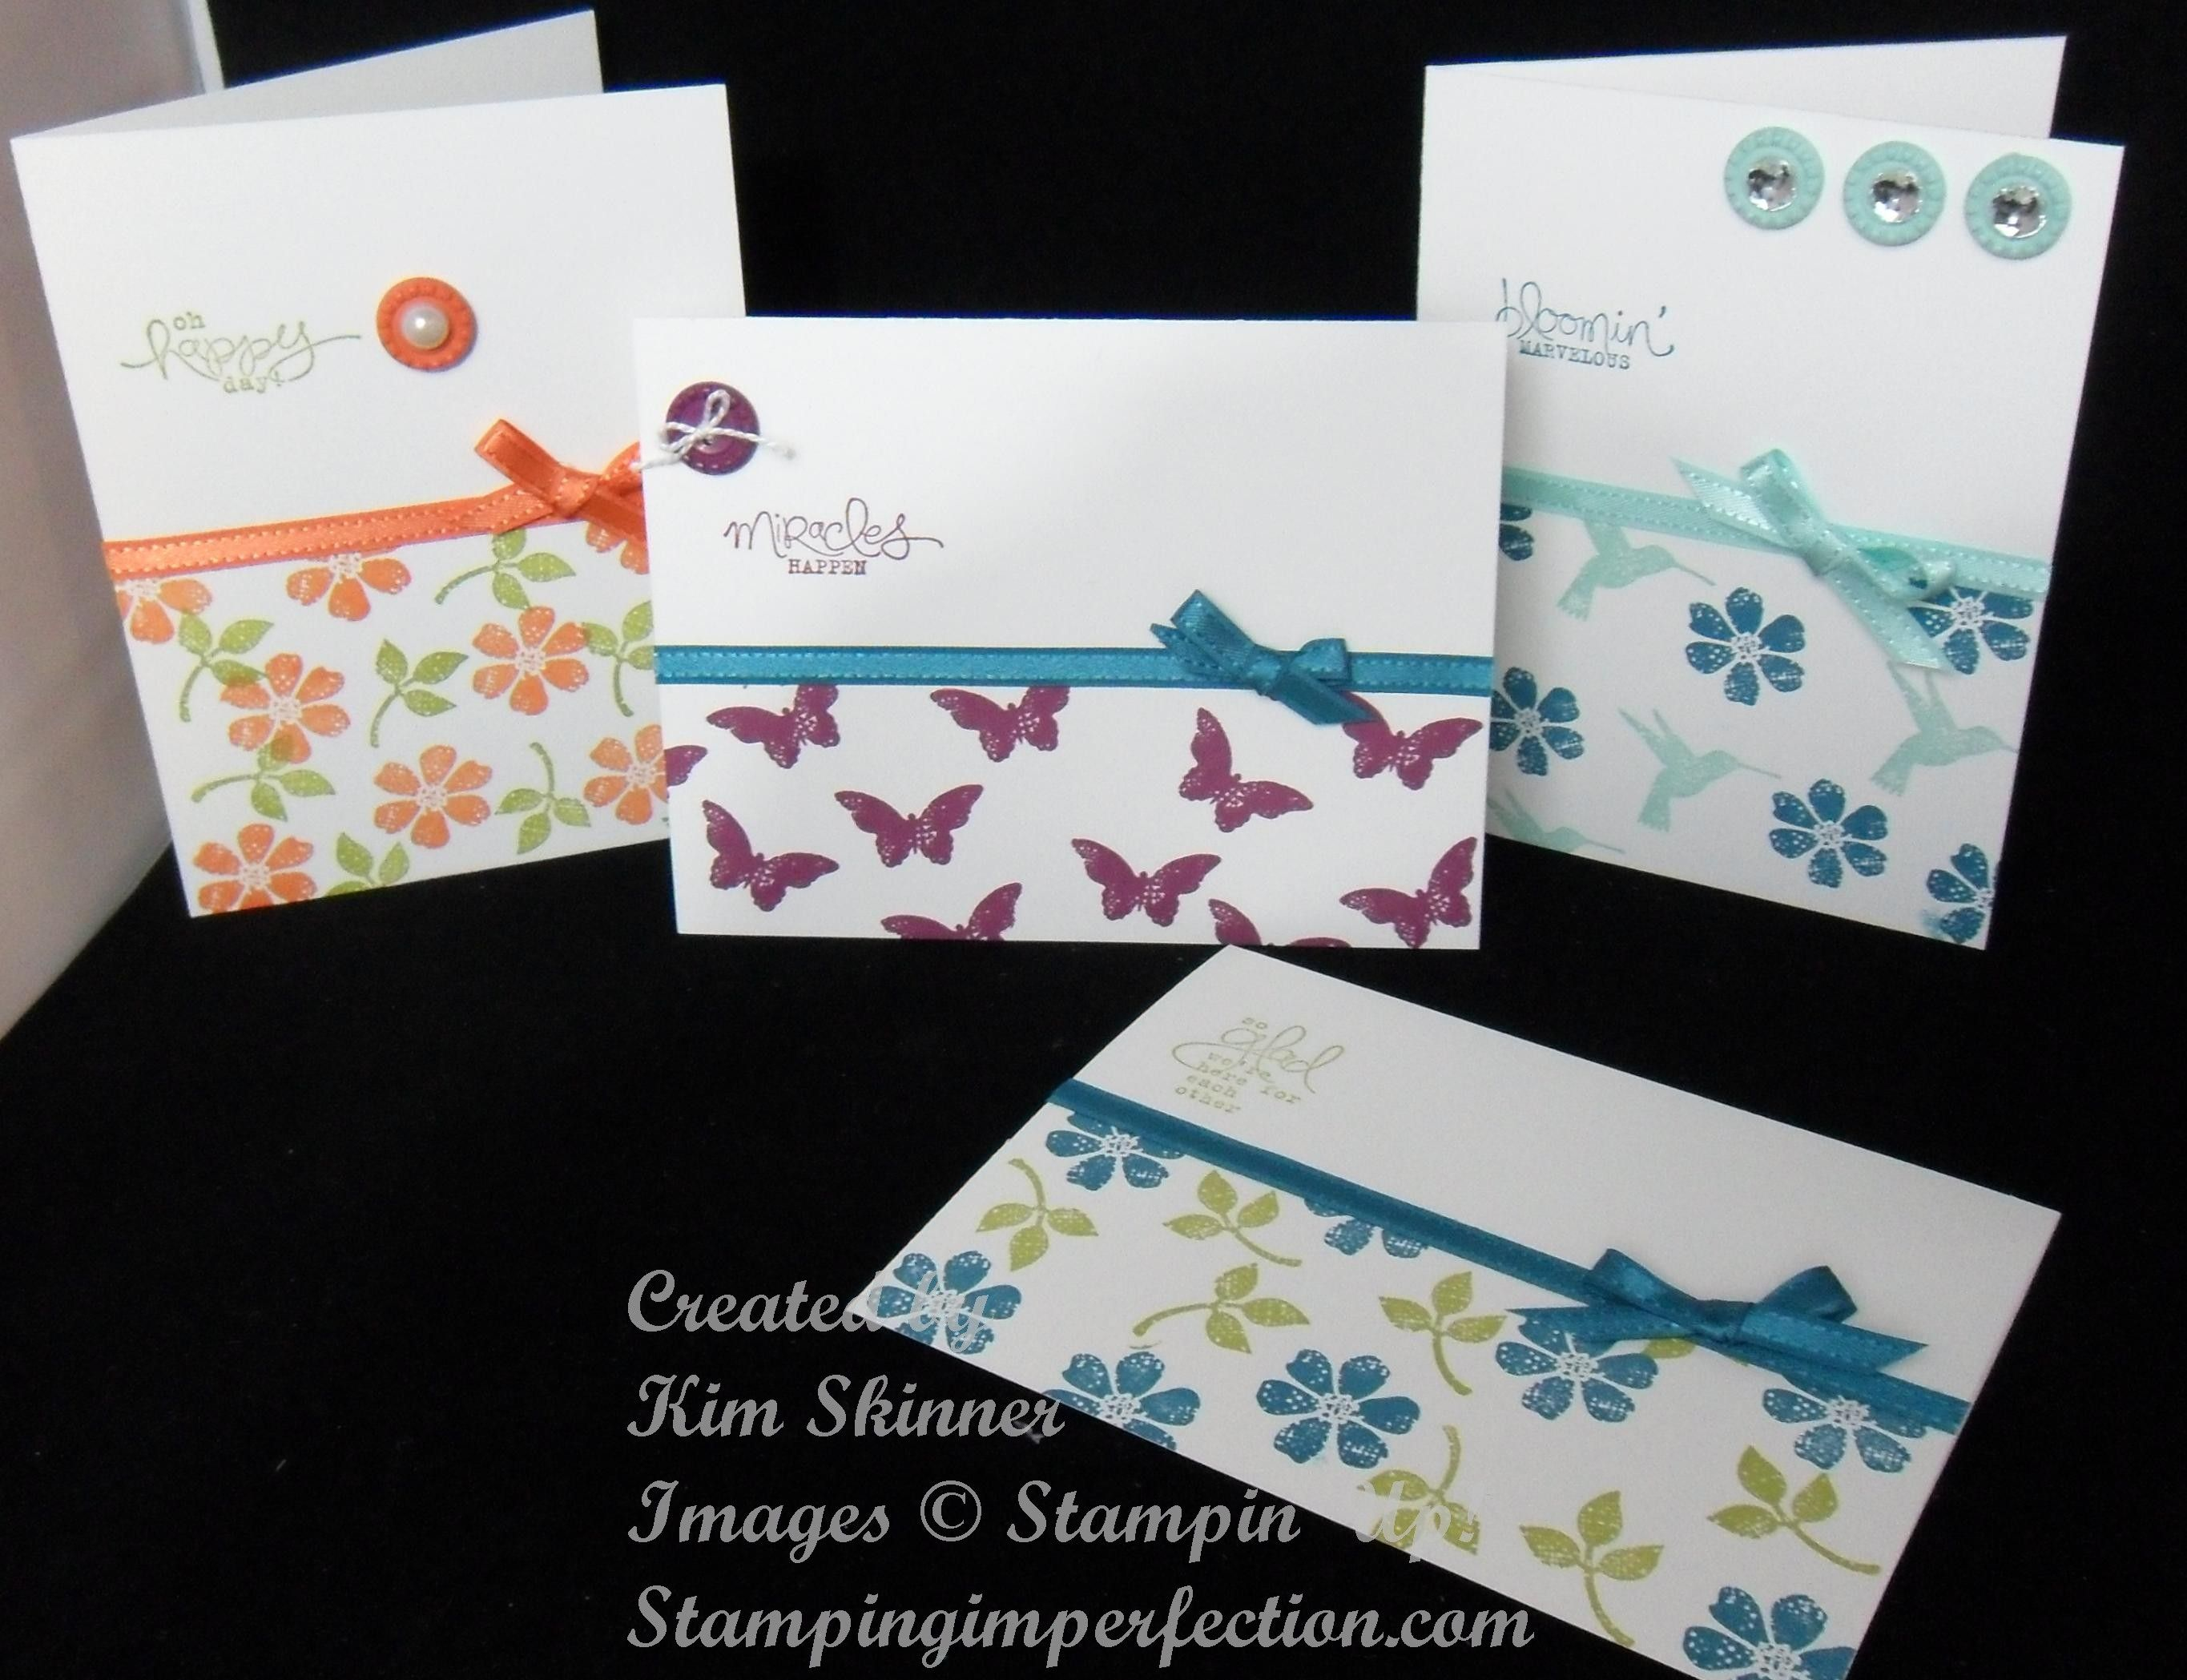 4 bloomin marvelous stampin up cards tangerine tango rich 4 bloomin marvelous stampin up cards tangerine tango rich razzleberry island kristyandbryce Gallery